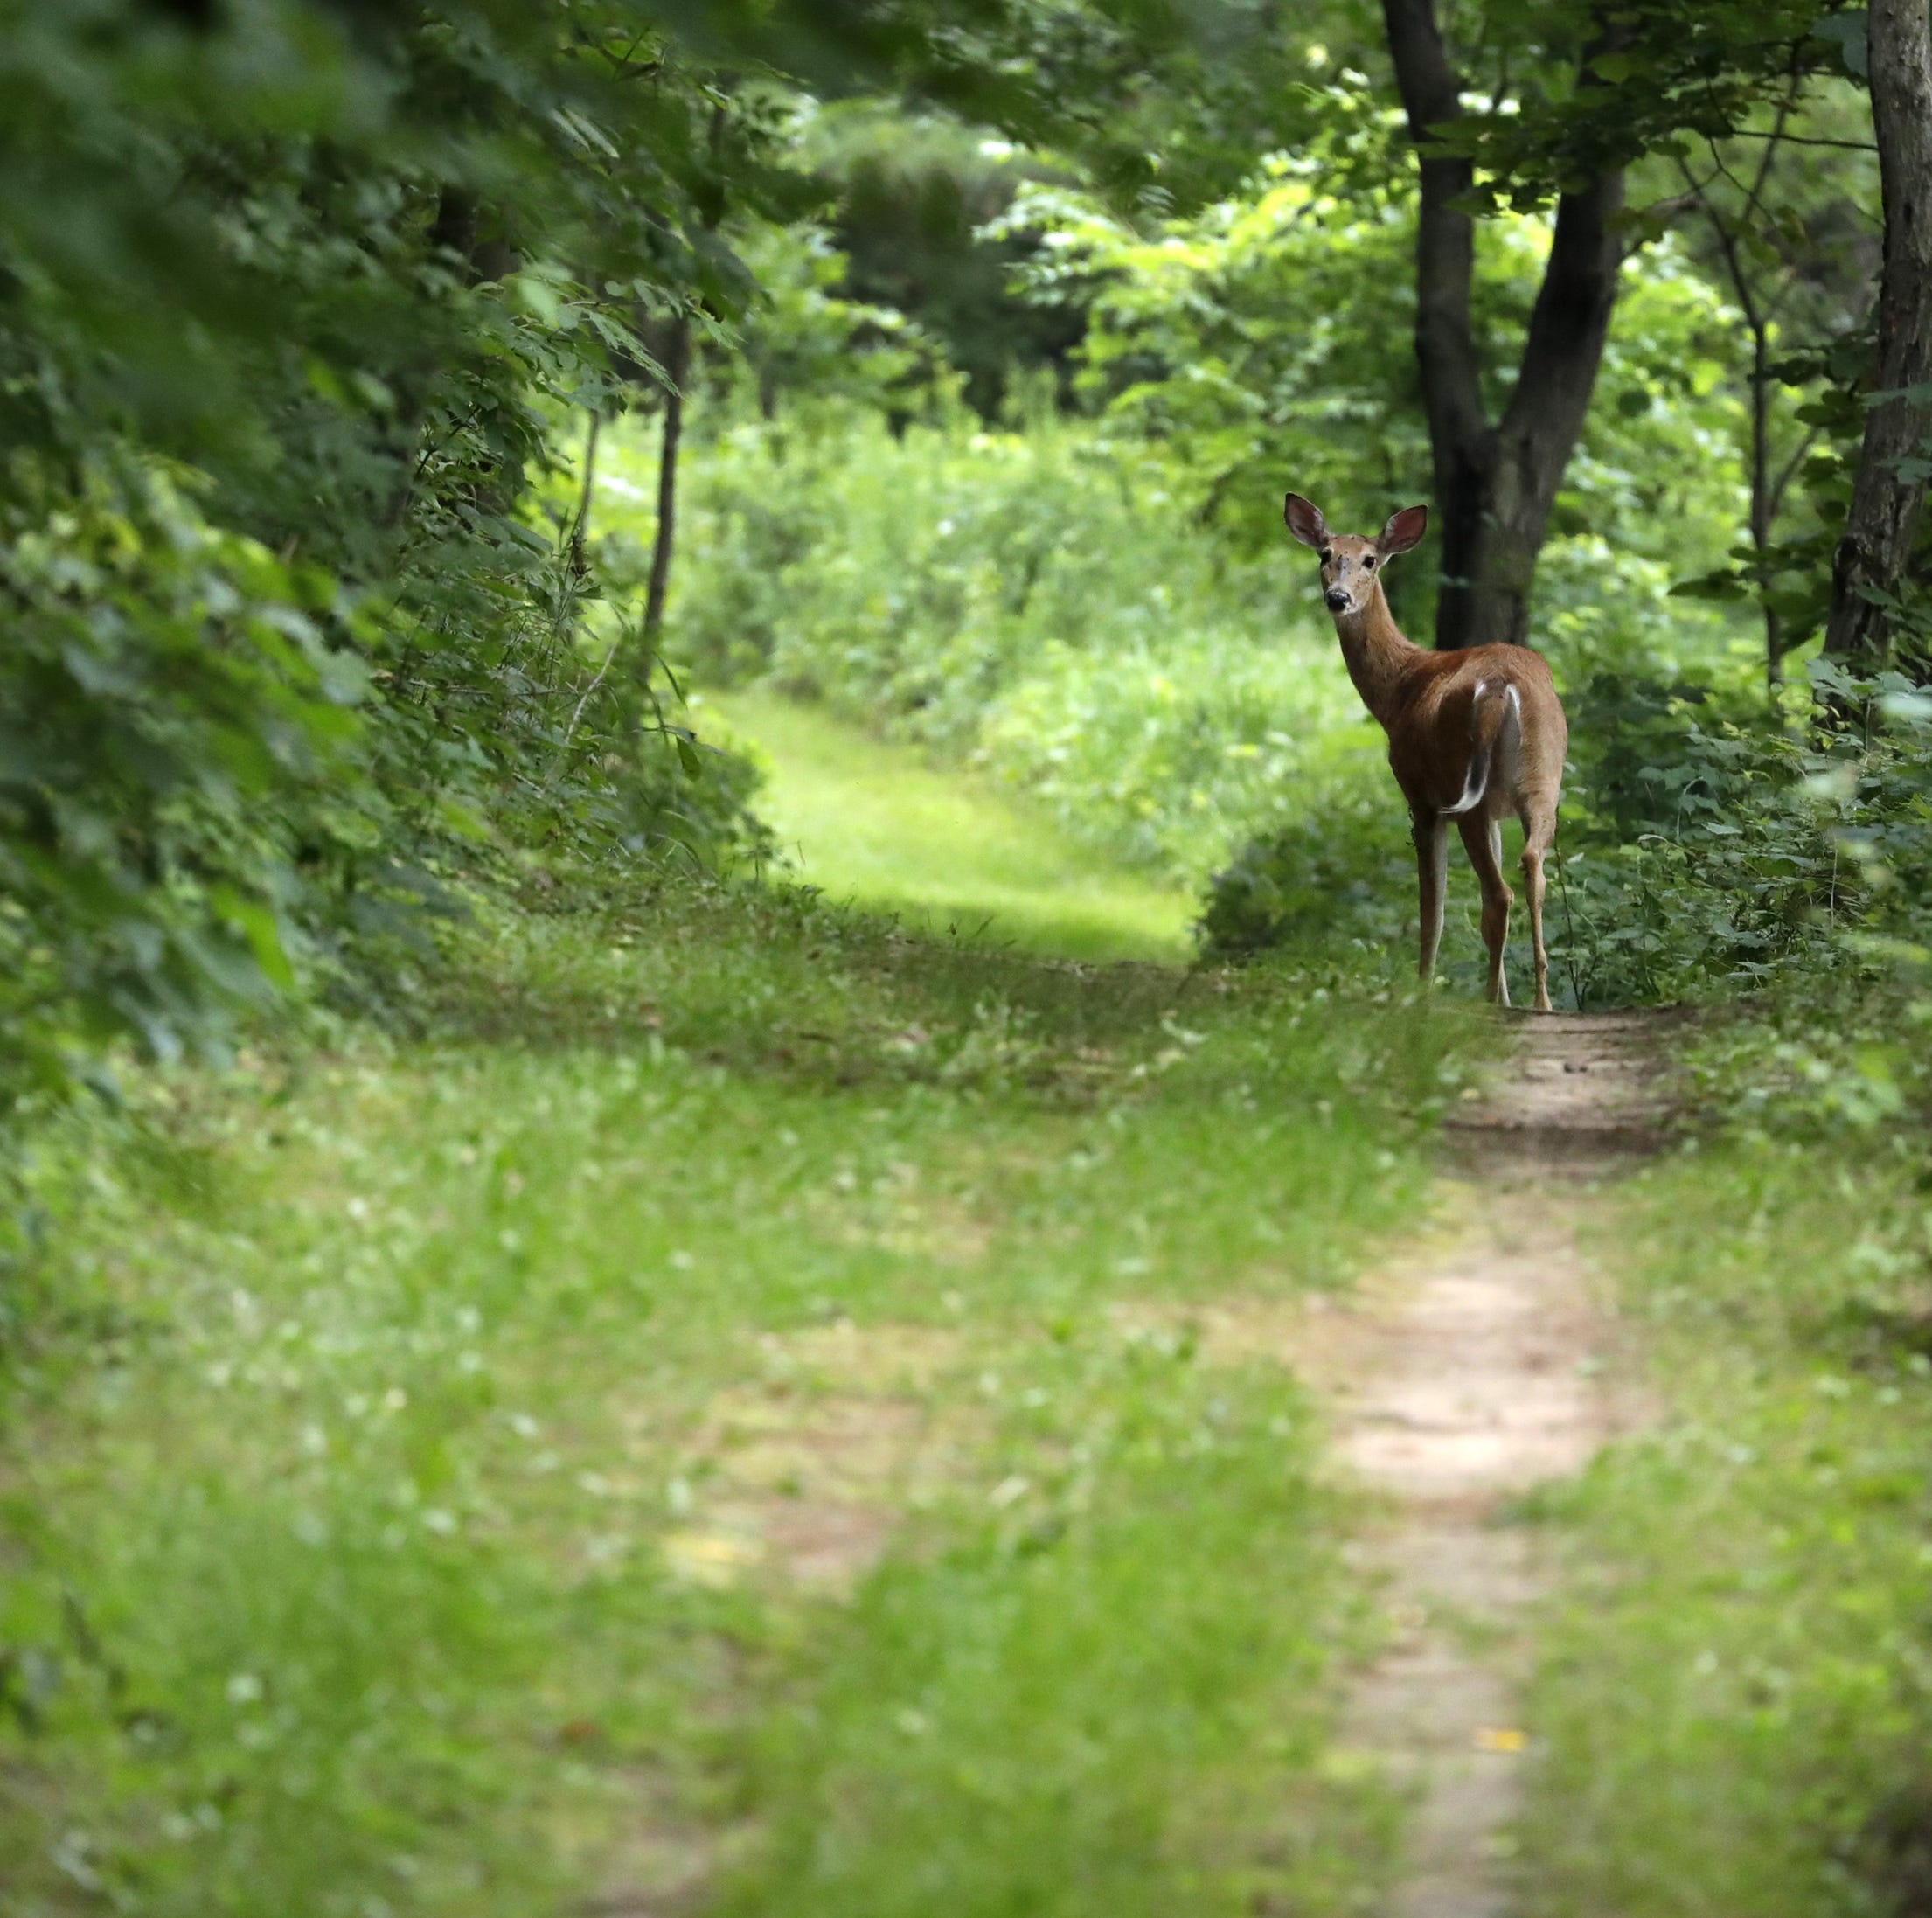 A deer wanders the Succession Loop trail at Mosquito Hill Nature Center Thursday, Aug. 16, 2018, in New London, Wis.